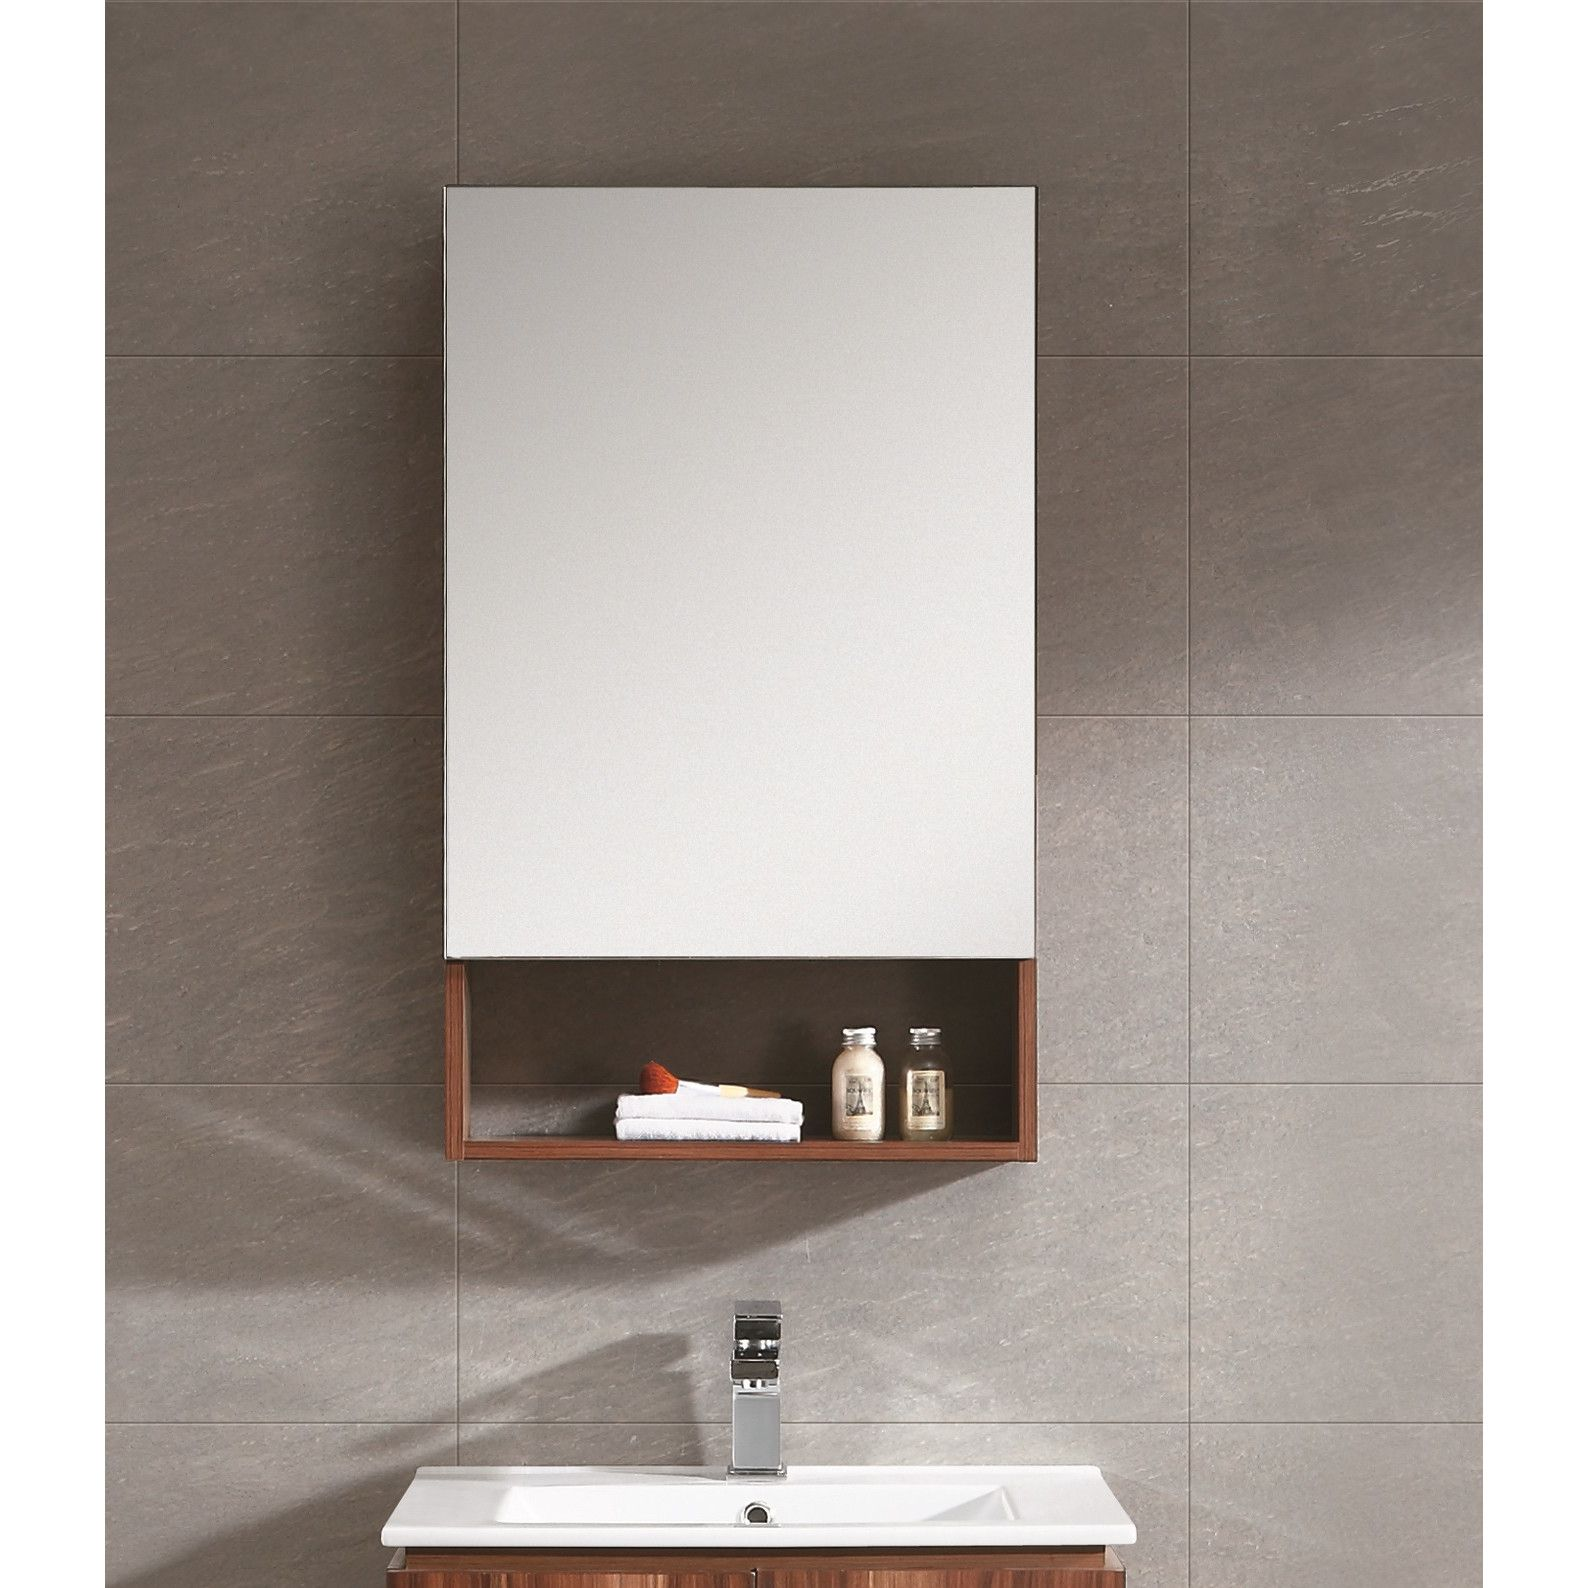 medicine size modern appealing studio ideas of com mirror at series wood cabinet wall iv medicinets with jensen how full home bathroom hang to rare photos cabinets amazon